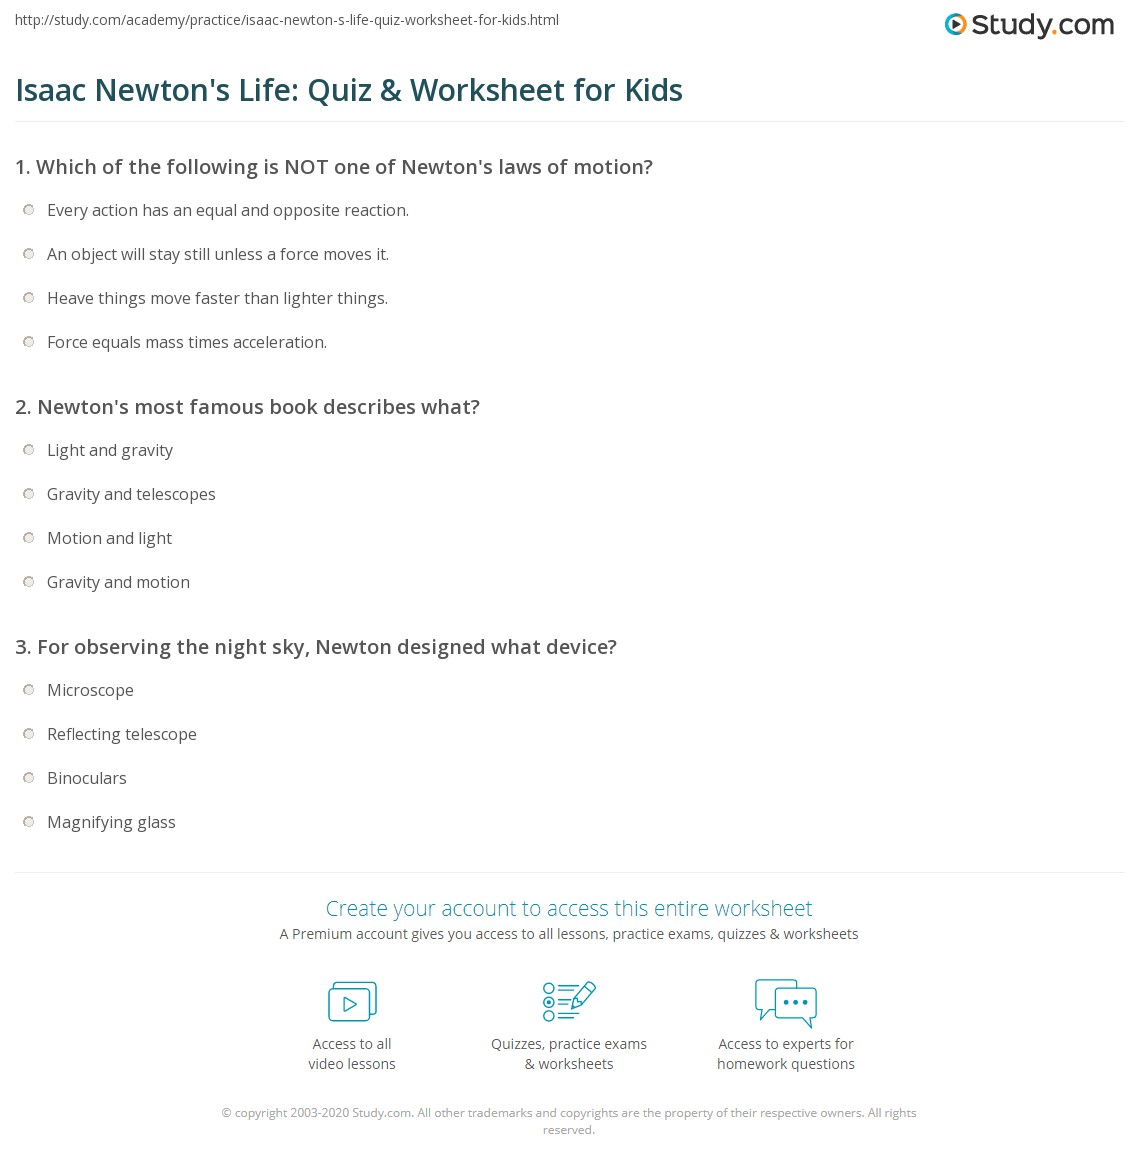 isaac newton kids essay Sample queries for search isaac newton essay topics on graduateway free isaac newton rubrics paper: short enlightenment thought essay brainstorming.